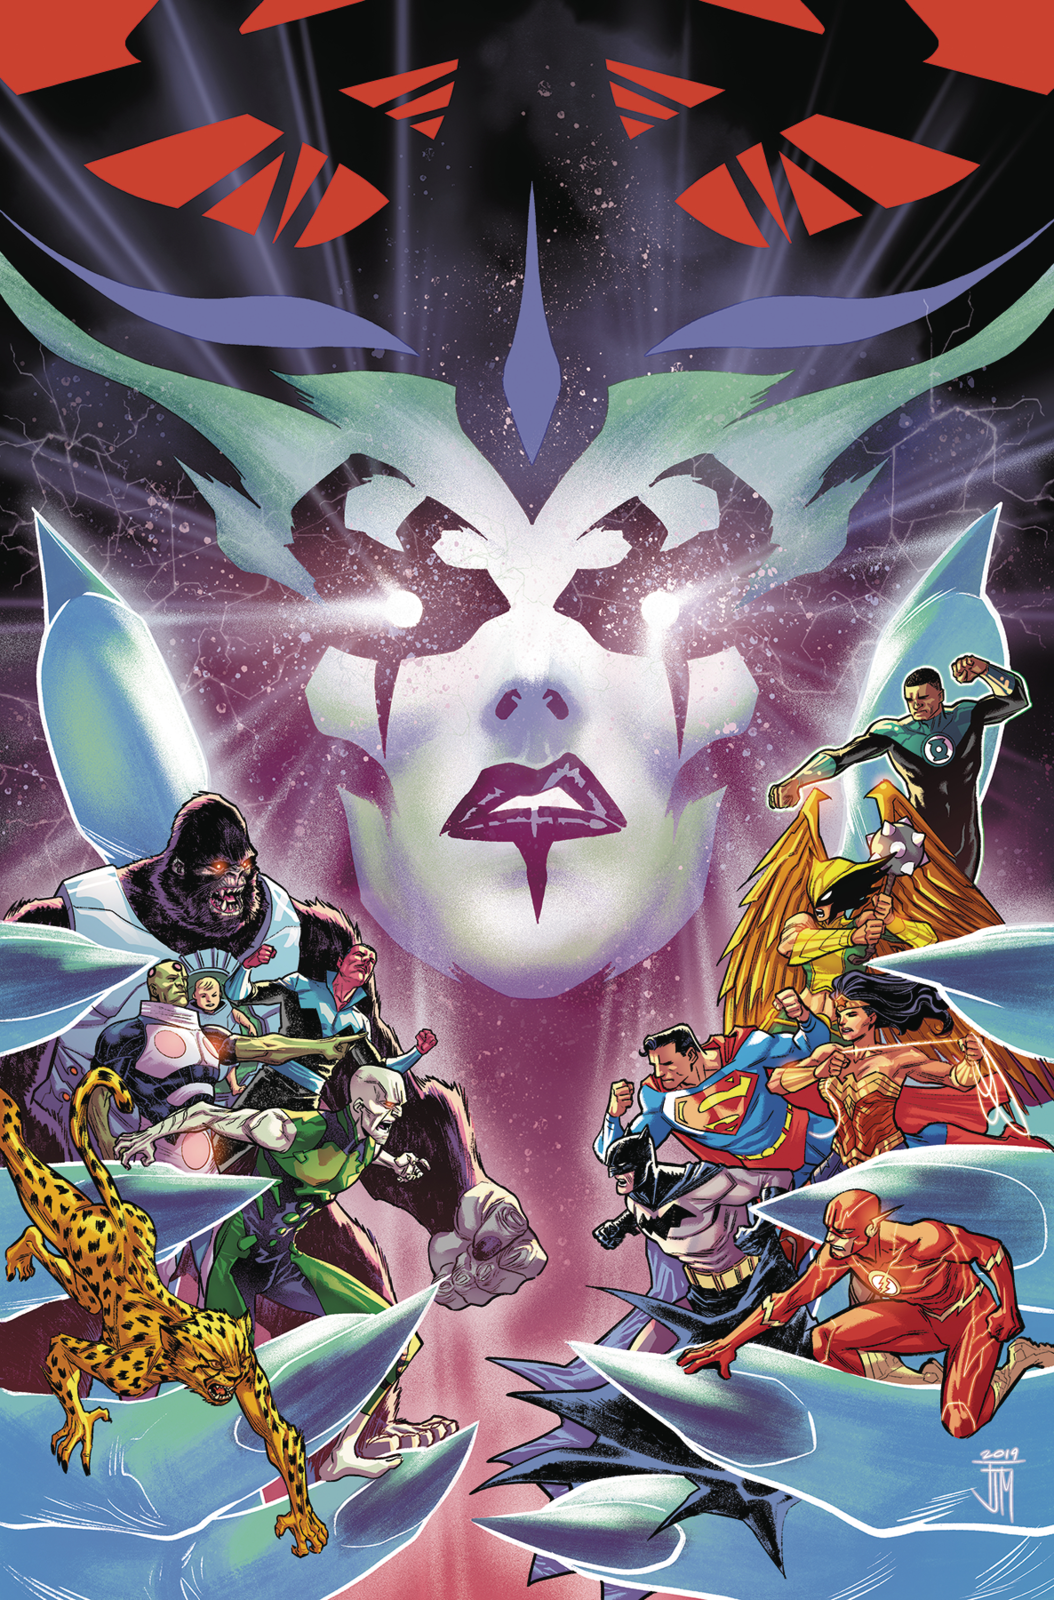 Justice League - #36 (Cover A) by Scott Snyder image